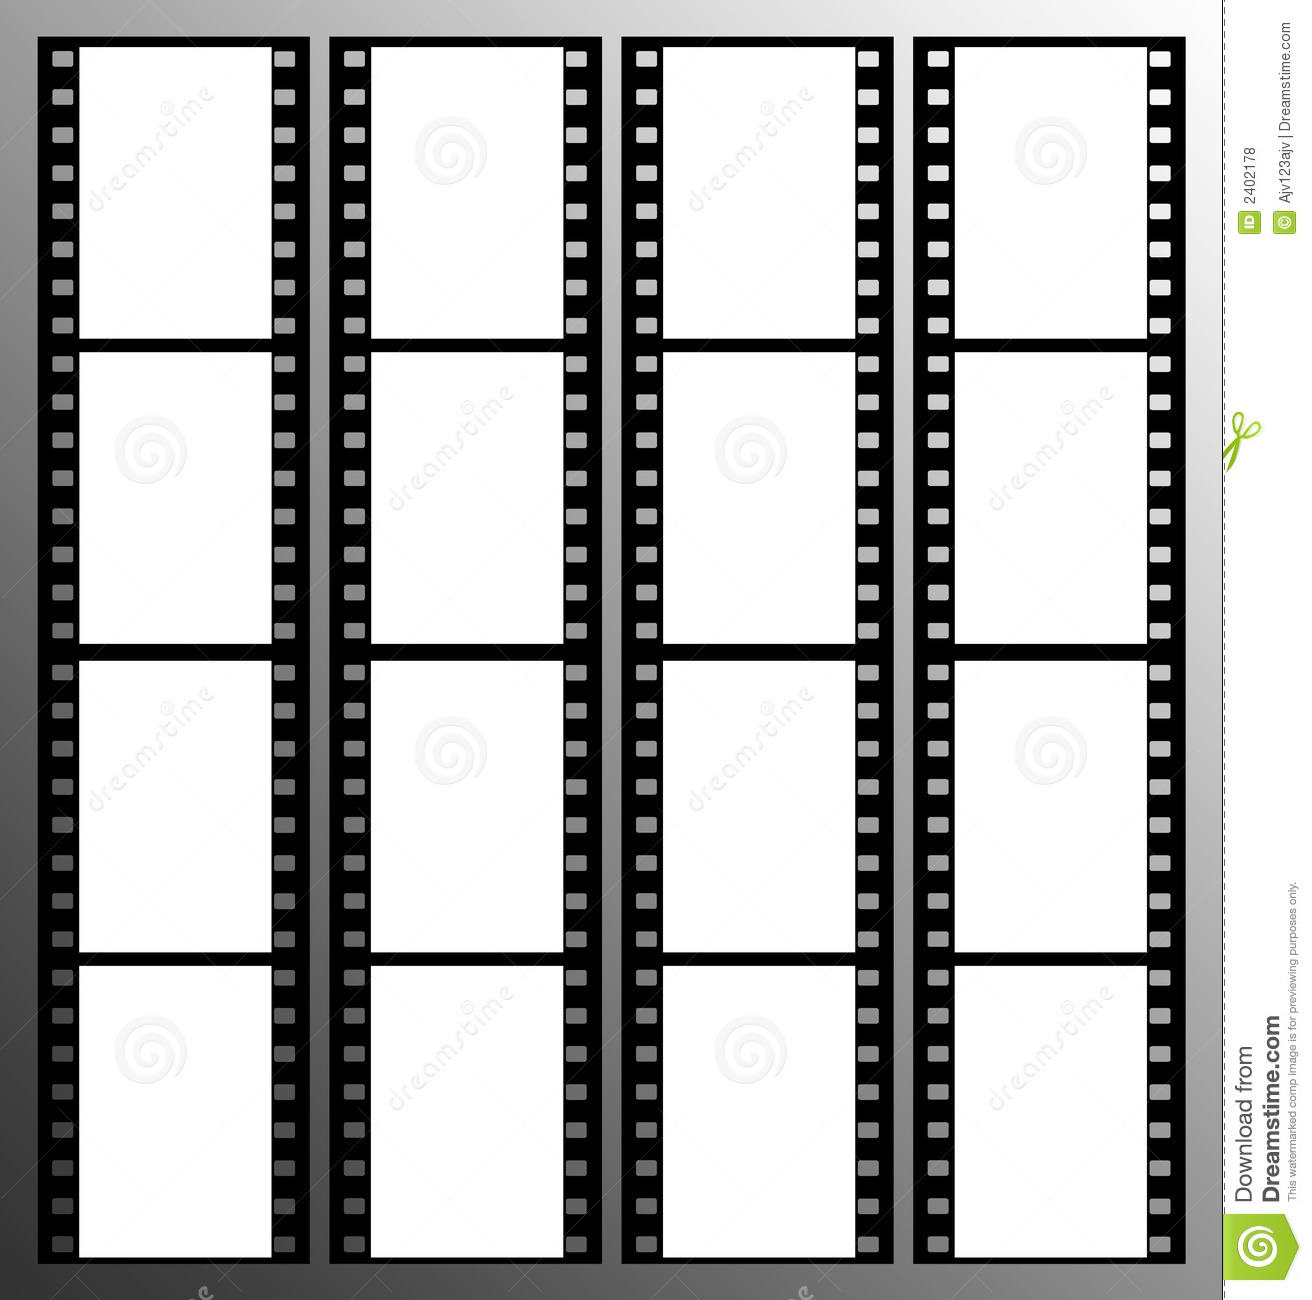 35mm Film Strip Frames Frame Stock Vector - Illustration of mask ...